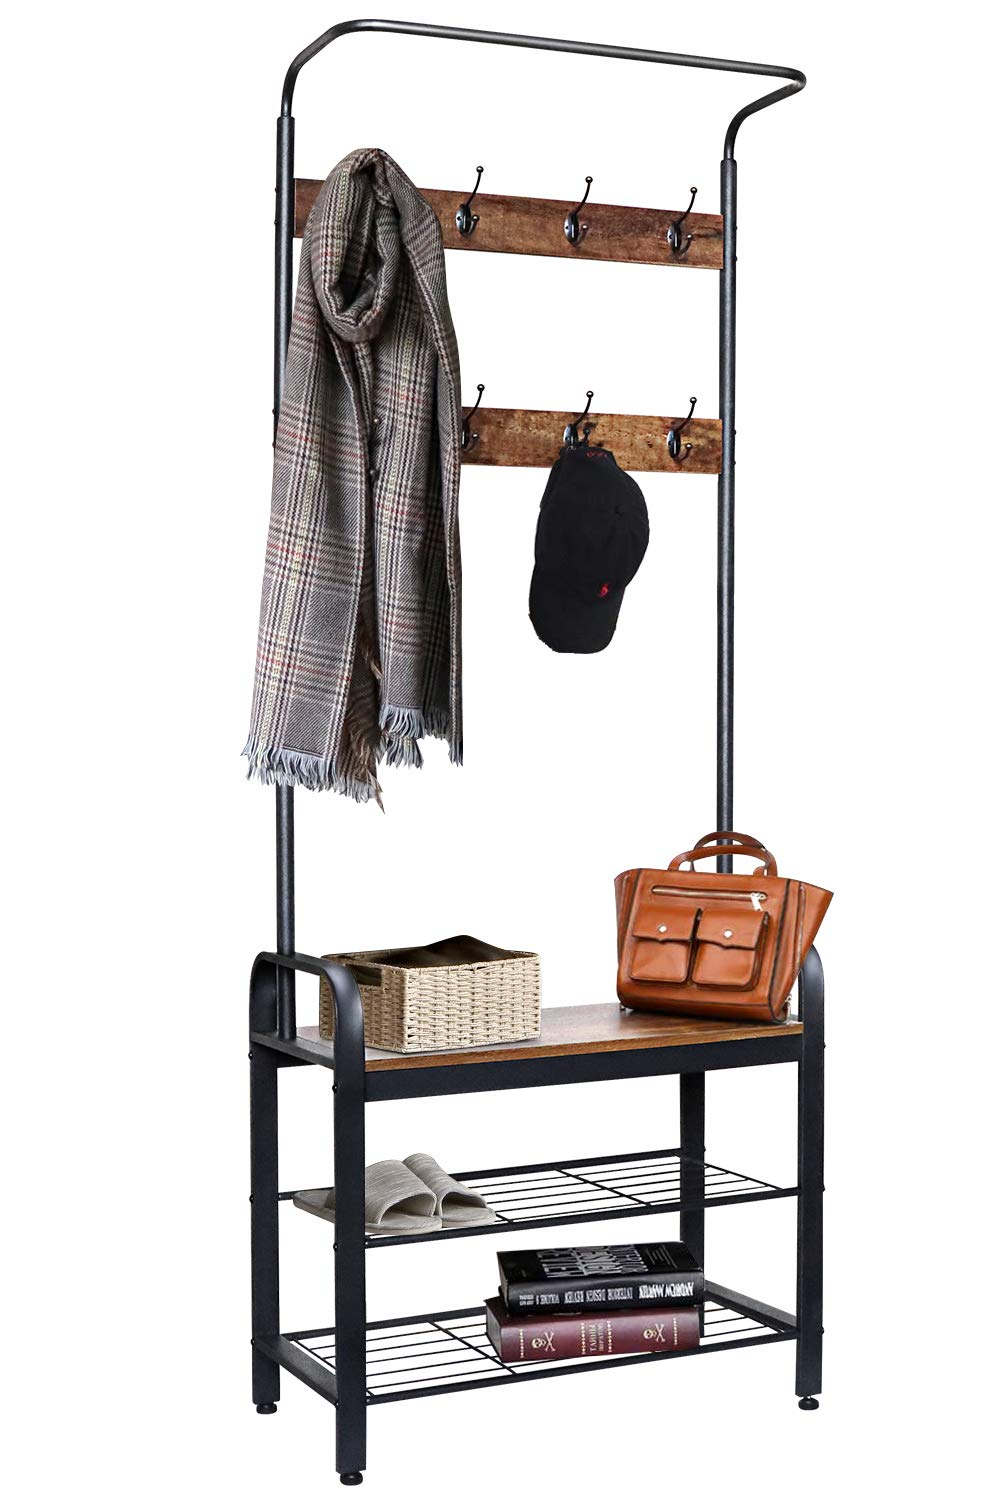 ZNCMRR Entryway Hall Tree with Shoe Bench, Rustic Coat Rack Industrial Entryway Furniture Organizer with 8 Double Hooks and Storage Shelf for Hallway, Bedroom, Living Room, Easy Assembly by ZNCMRR